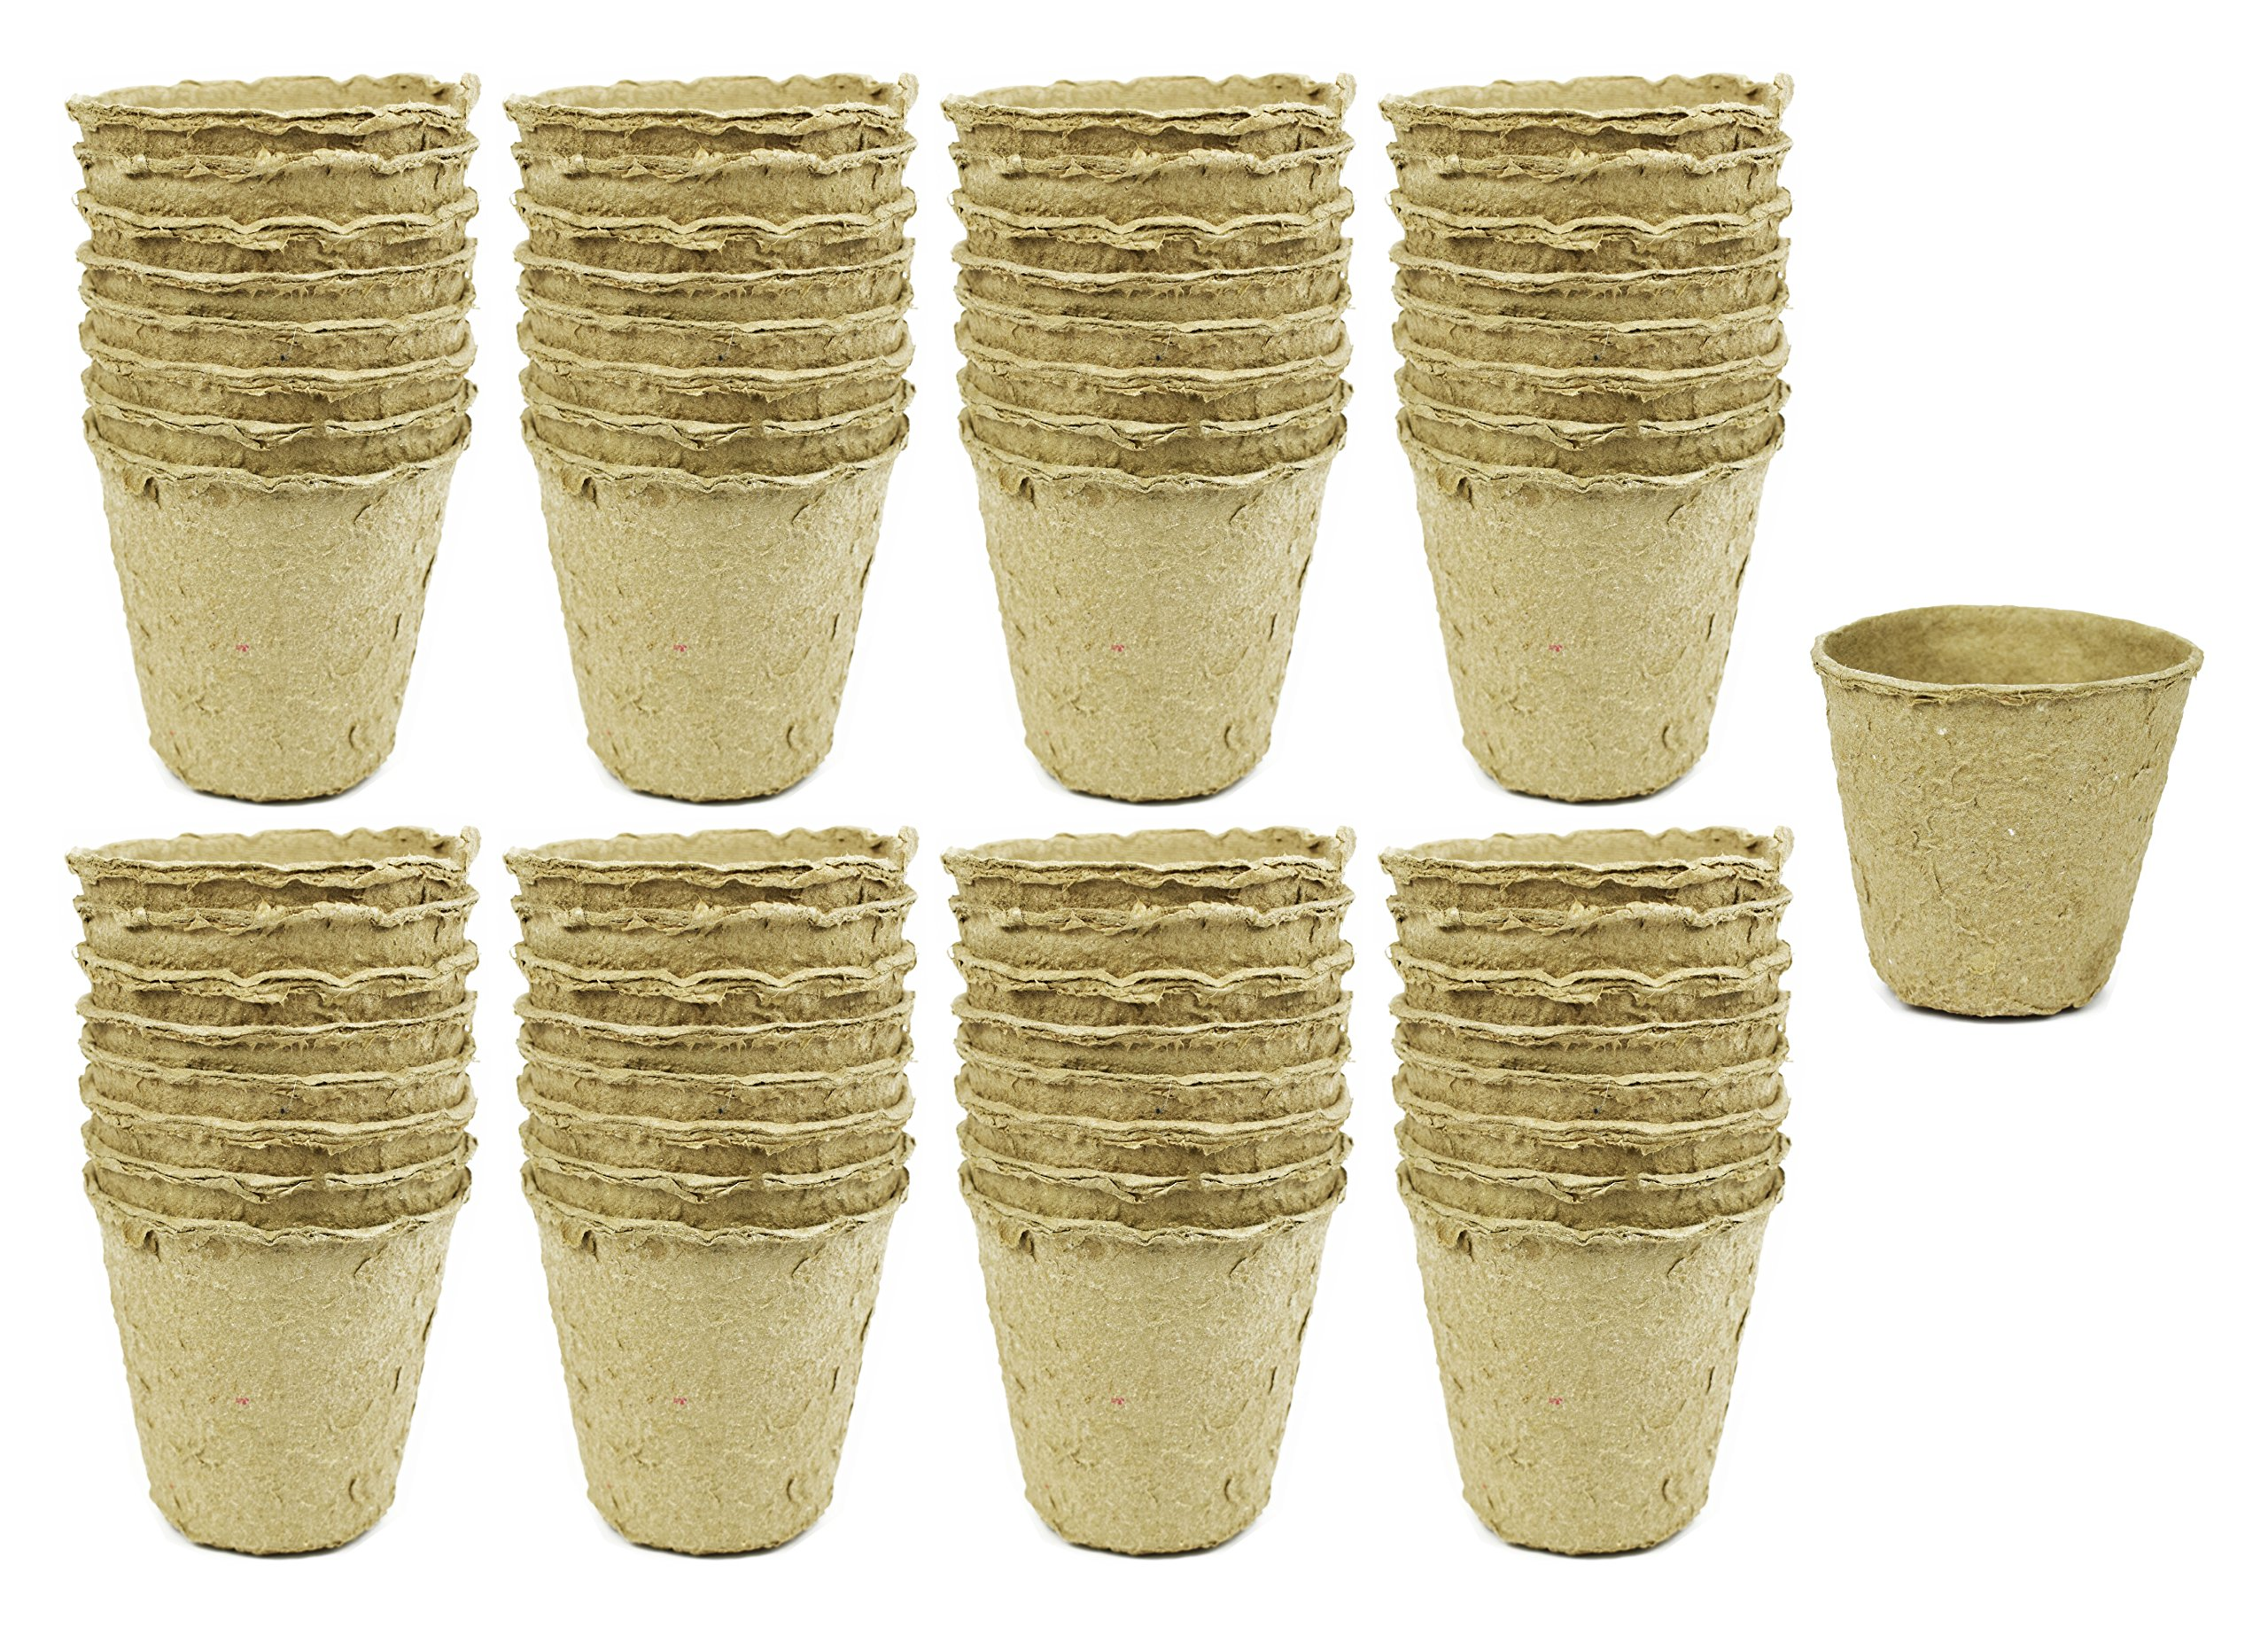 Set of 64 Biodegradable Eco Friendly Peat Pots! 3.125'' Diameter x 3'' - Recycled Non Bleached Peat Pots Perfect for Seed Germination! No Transplanting Required - No More Damaged Roots!